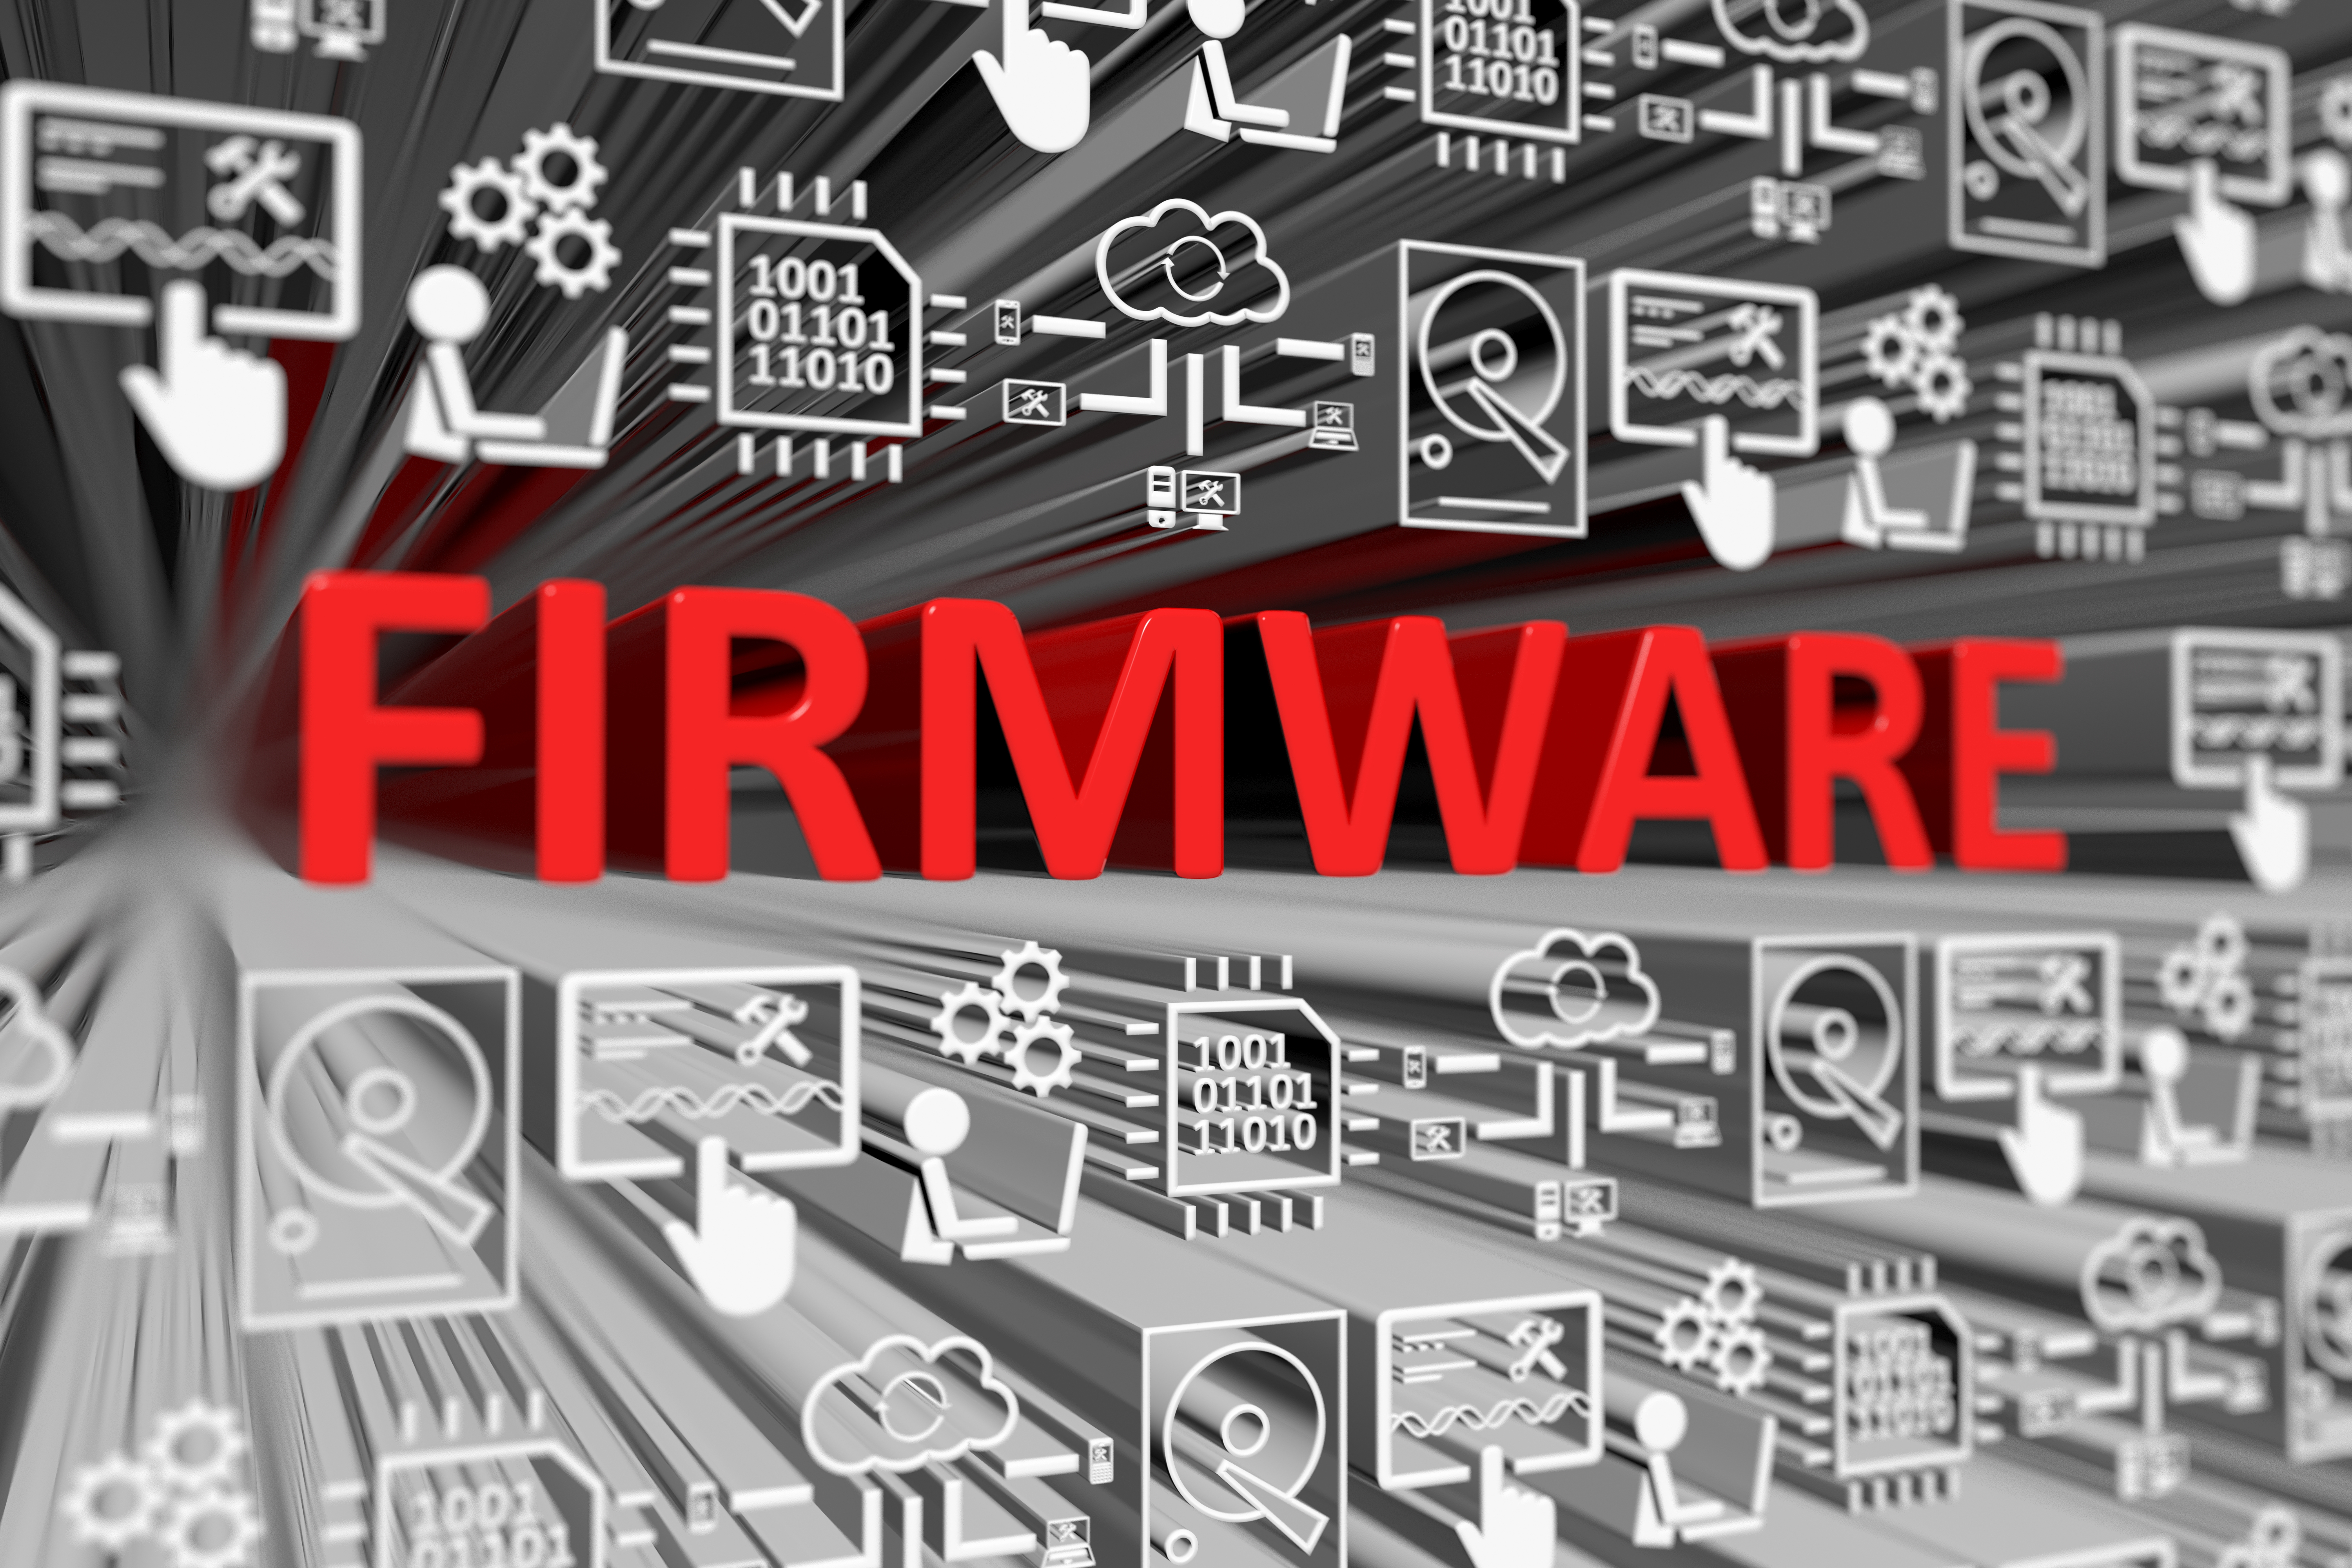 check the post:How Firmware Works for a description of the image